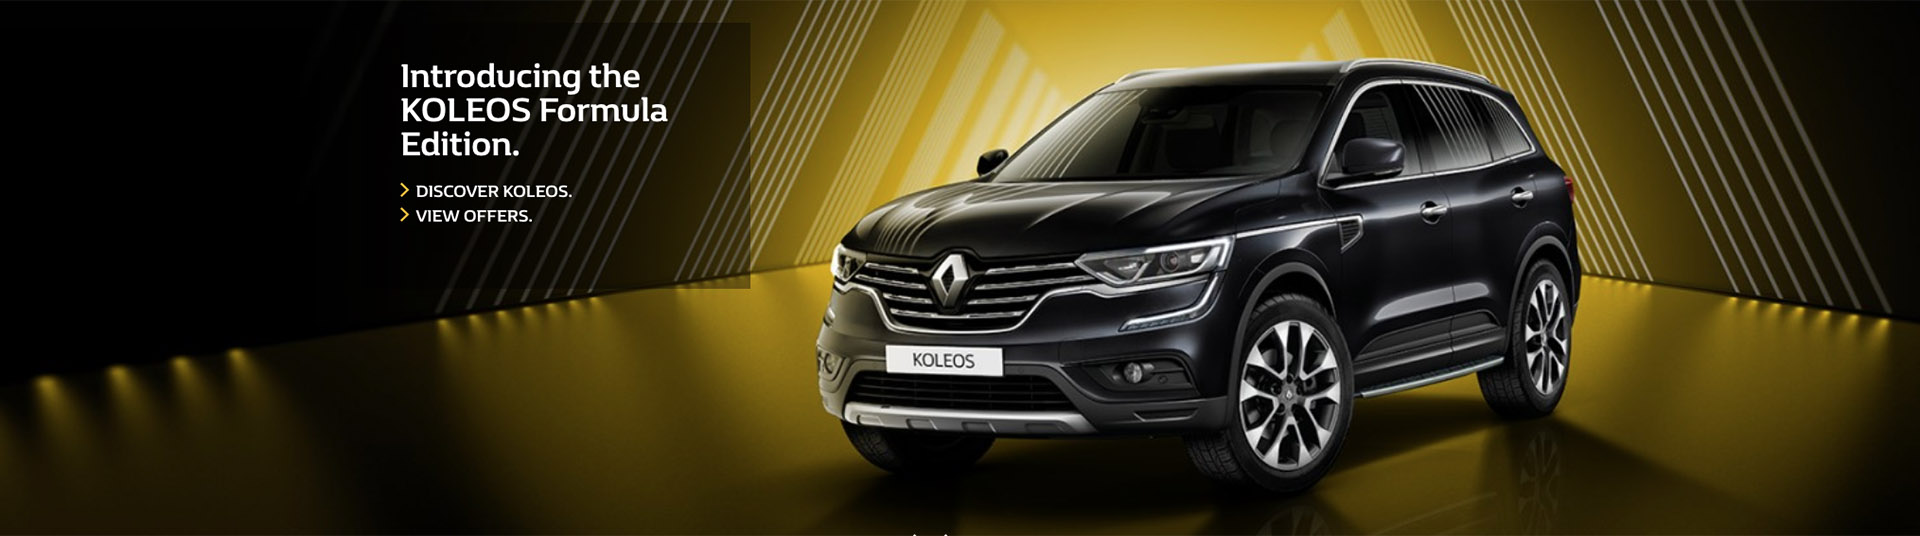 Introducing the KOLEOS Formula Edition.